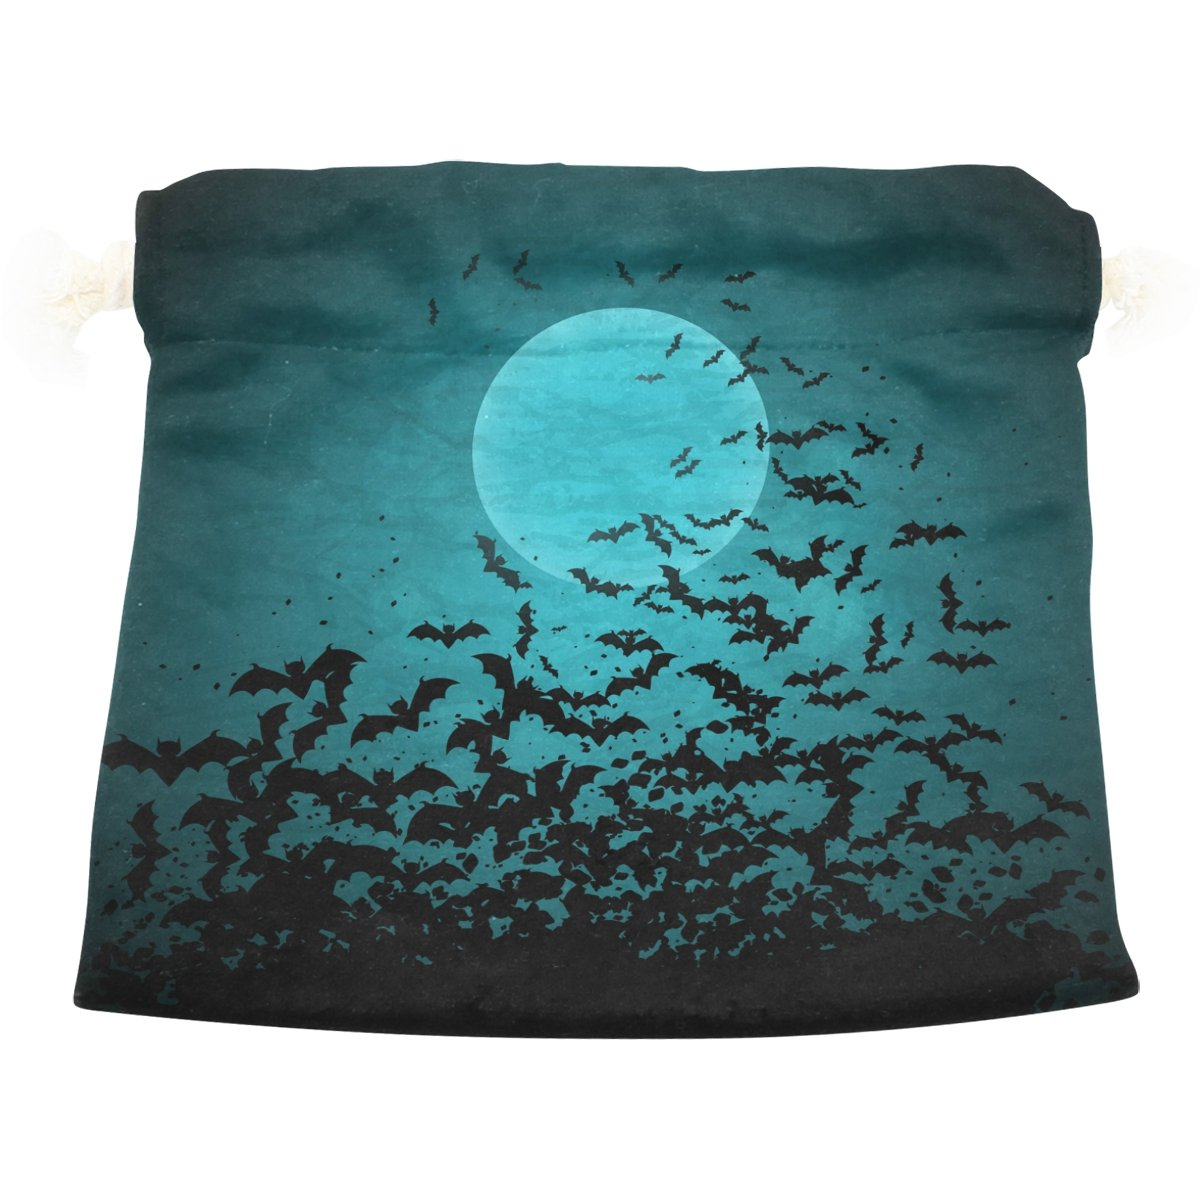 Dragon Sword Halloween Moon And Bats Gift Bags Jewelry Drawstring Pouches for Wedding Party, 5.5x5.5 Inch